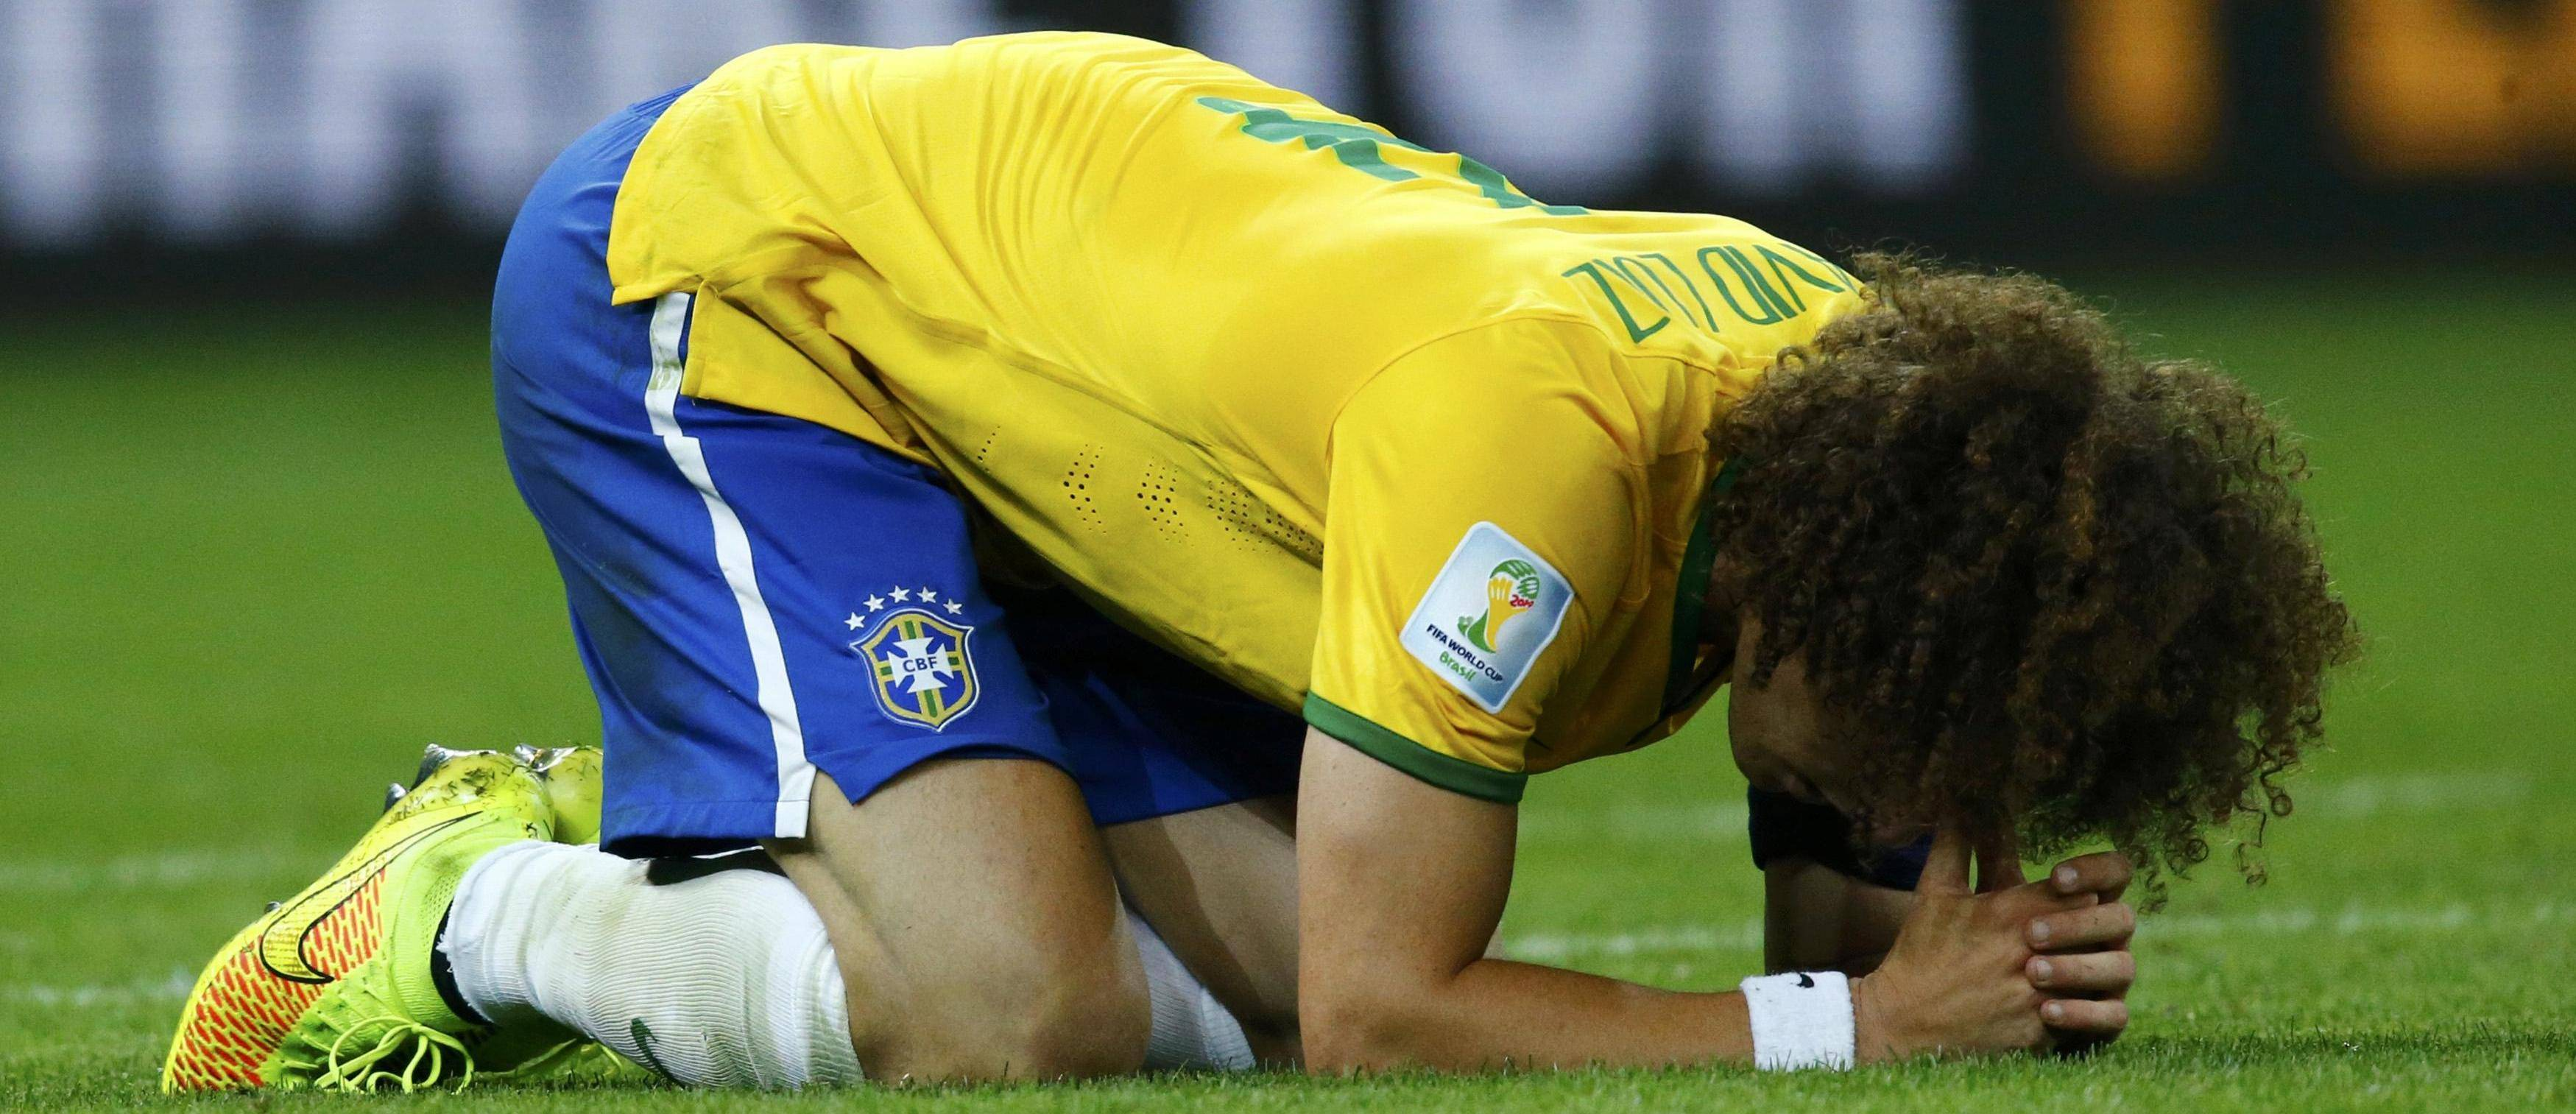 Brazil's David Luiz reacts after their 2014 World Cup semi-finals against Germany at the Mineirao stadium in Belo Horizonte